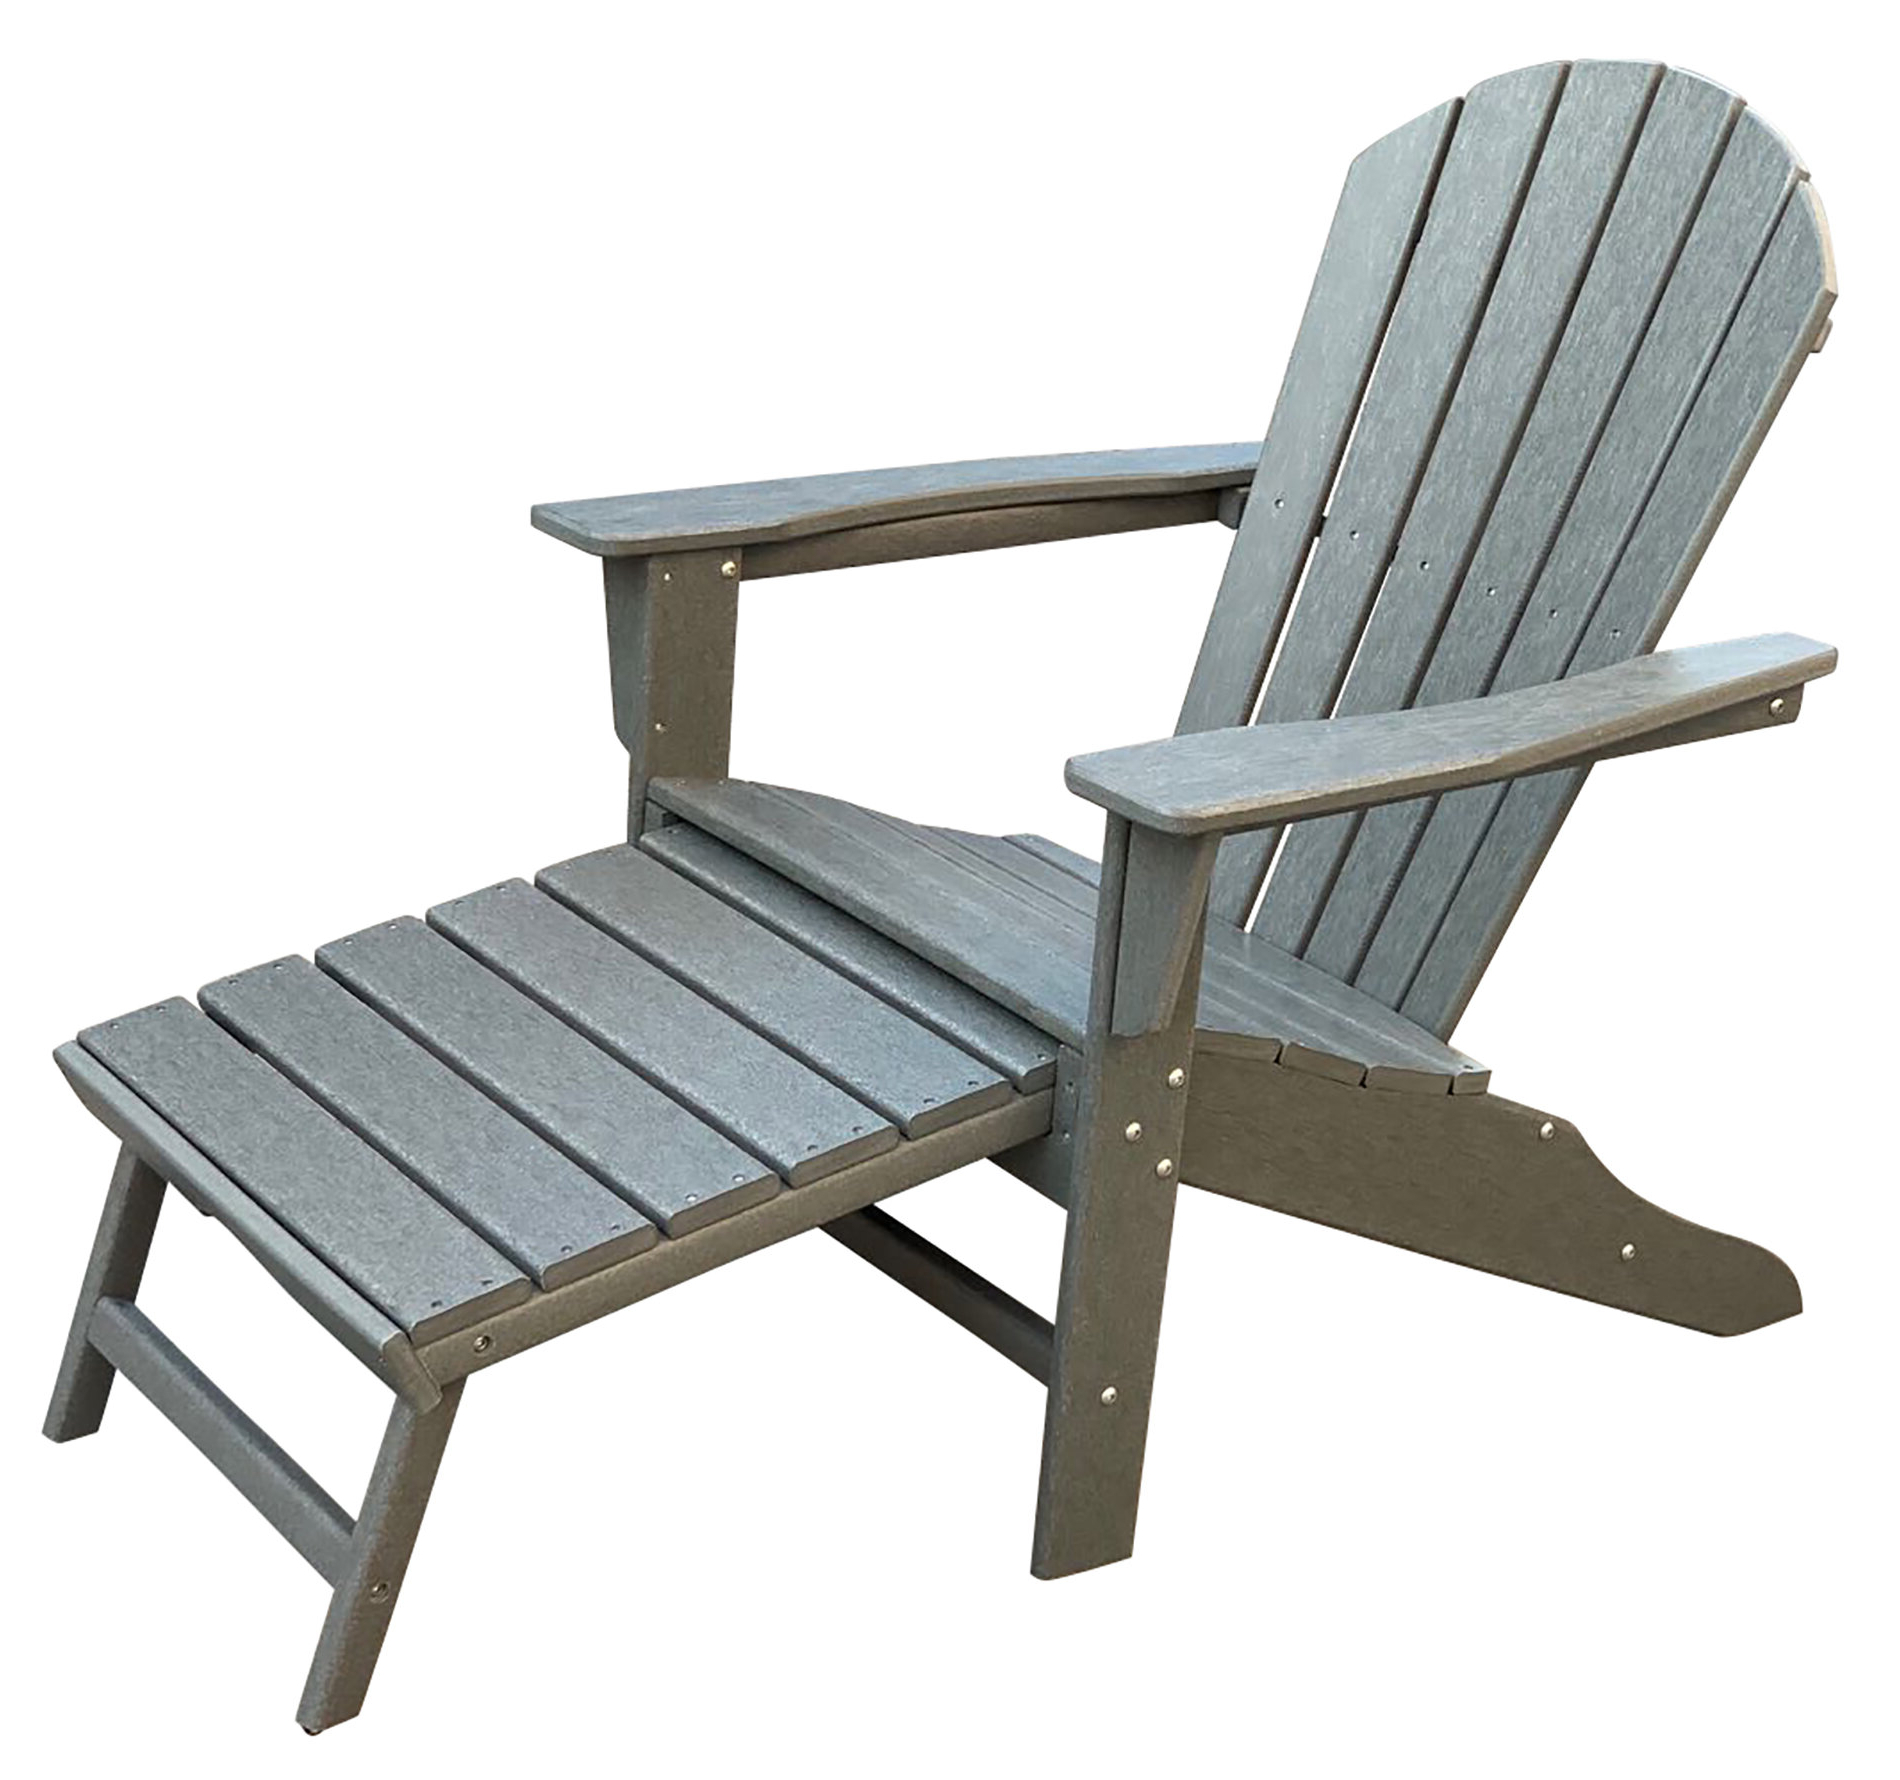 Popular Corinne Patio Plastic Adirondack Chair With Ottoman With Handmade White Folding Adirondack Pull Out Footrest Chairs (Gallery 11 of 25)